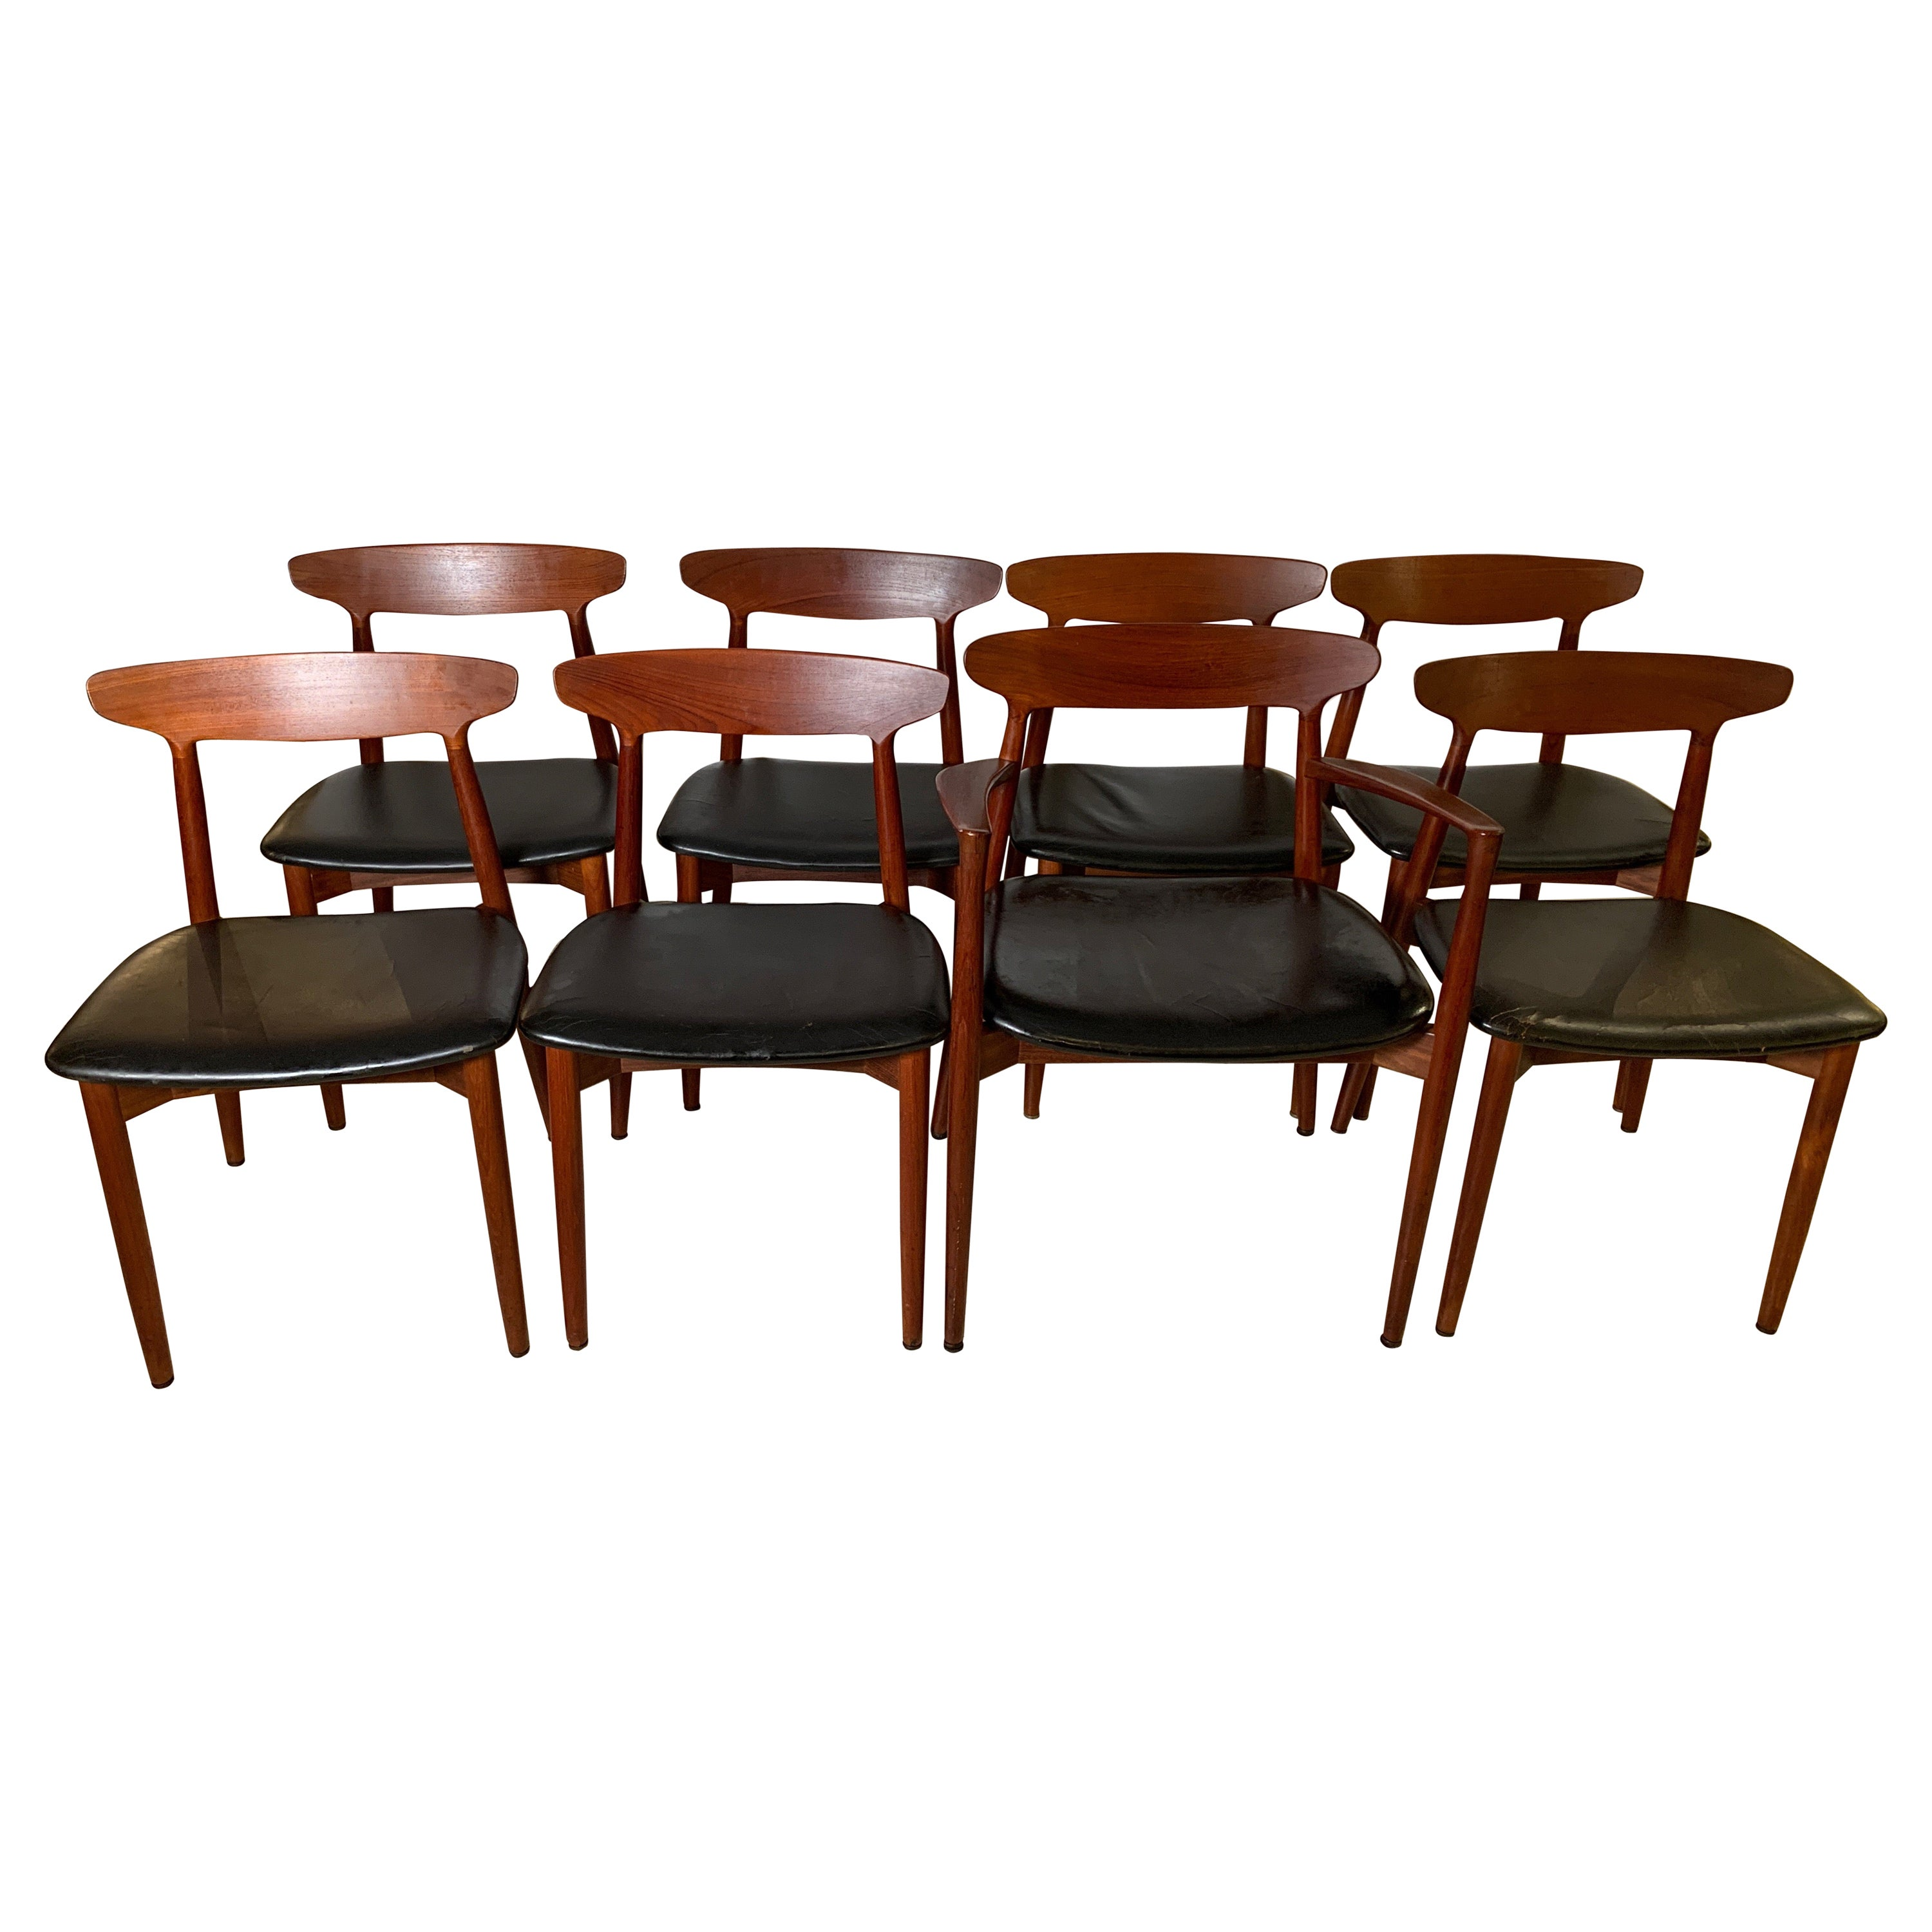 Harry Østergaard Set of Eight Teak and Leather Dining Chairs, Denmark, 1958